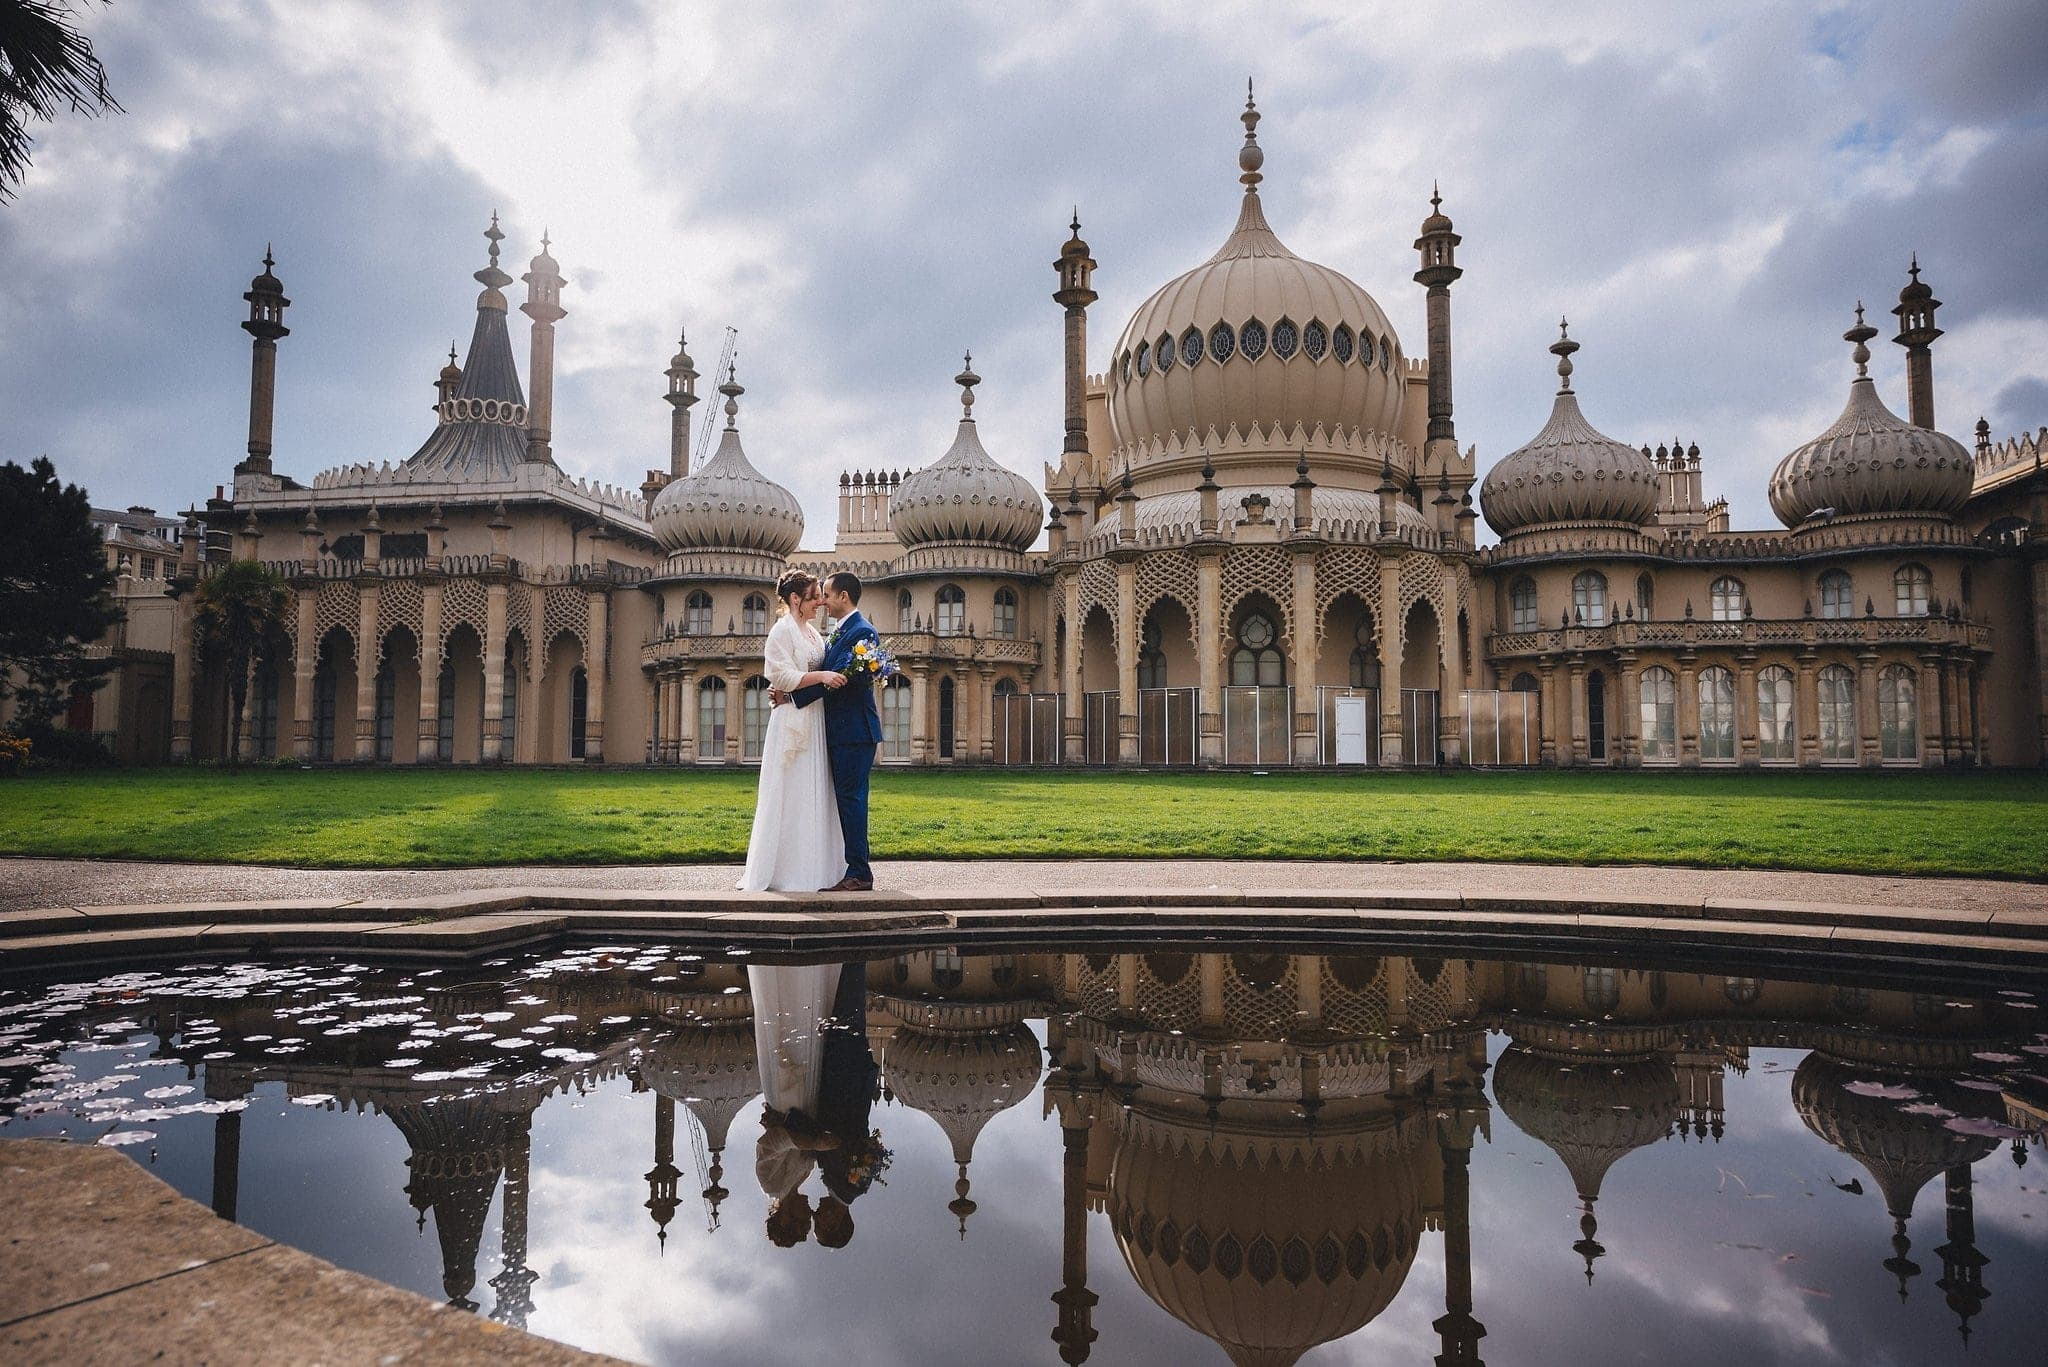 Bride and groom hugging in front of the Brighton Royal Pavilion with a reflection in the pond